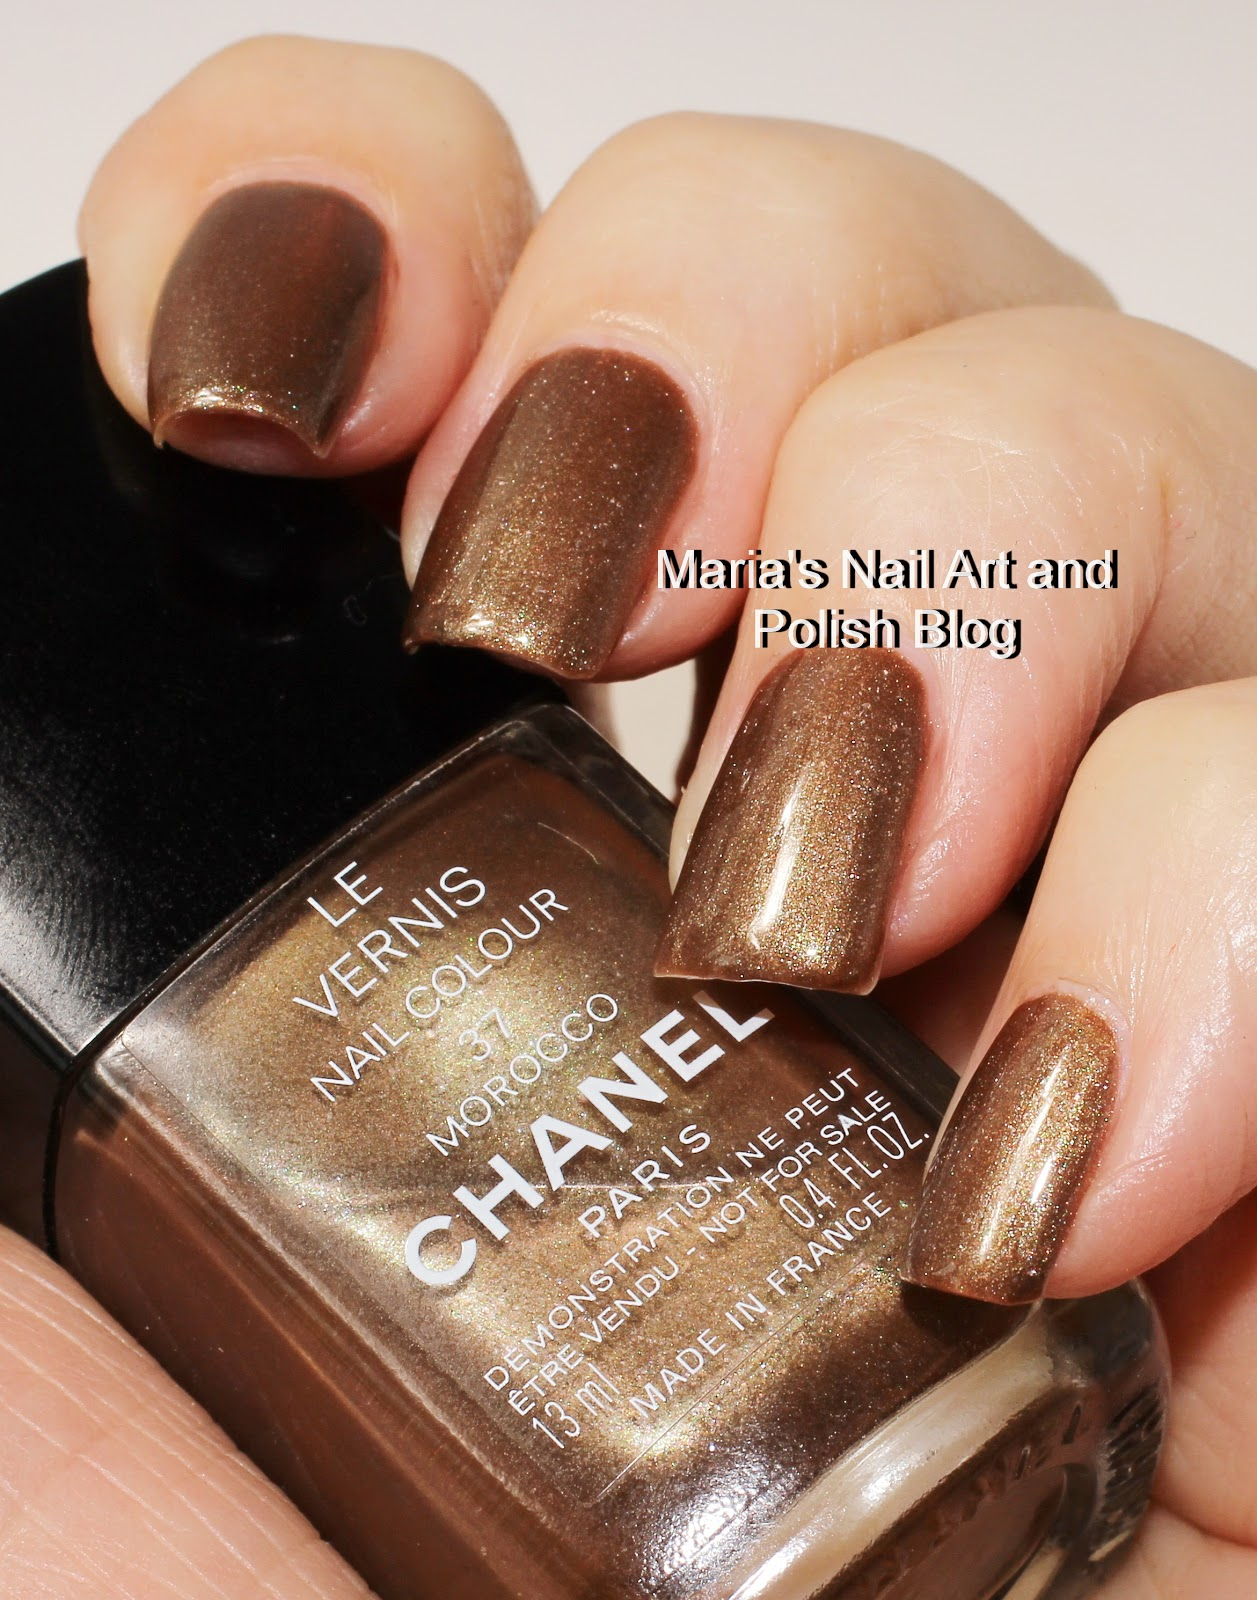 Marias nail art and polish blog chanel morocco 37 2000 chanel morocco 37 was to the best of my knowledge released in 2000 and its tempting to assume that it was in the same collection as sirocco 34 that i will prinsesfo Choice Image